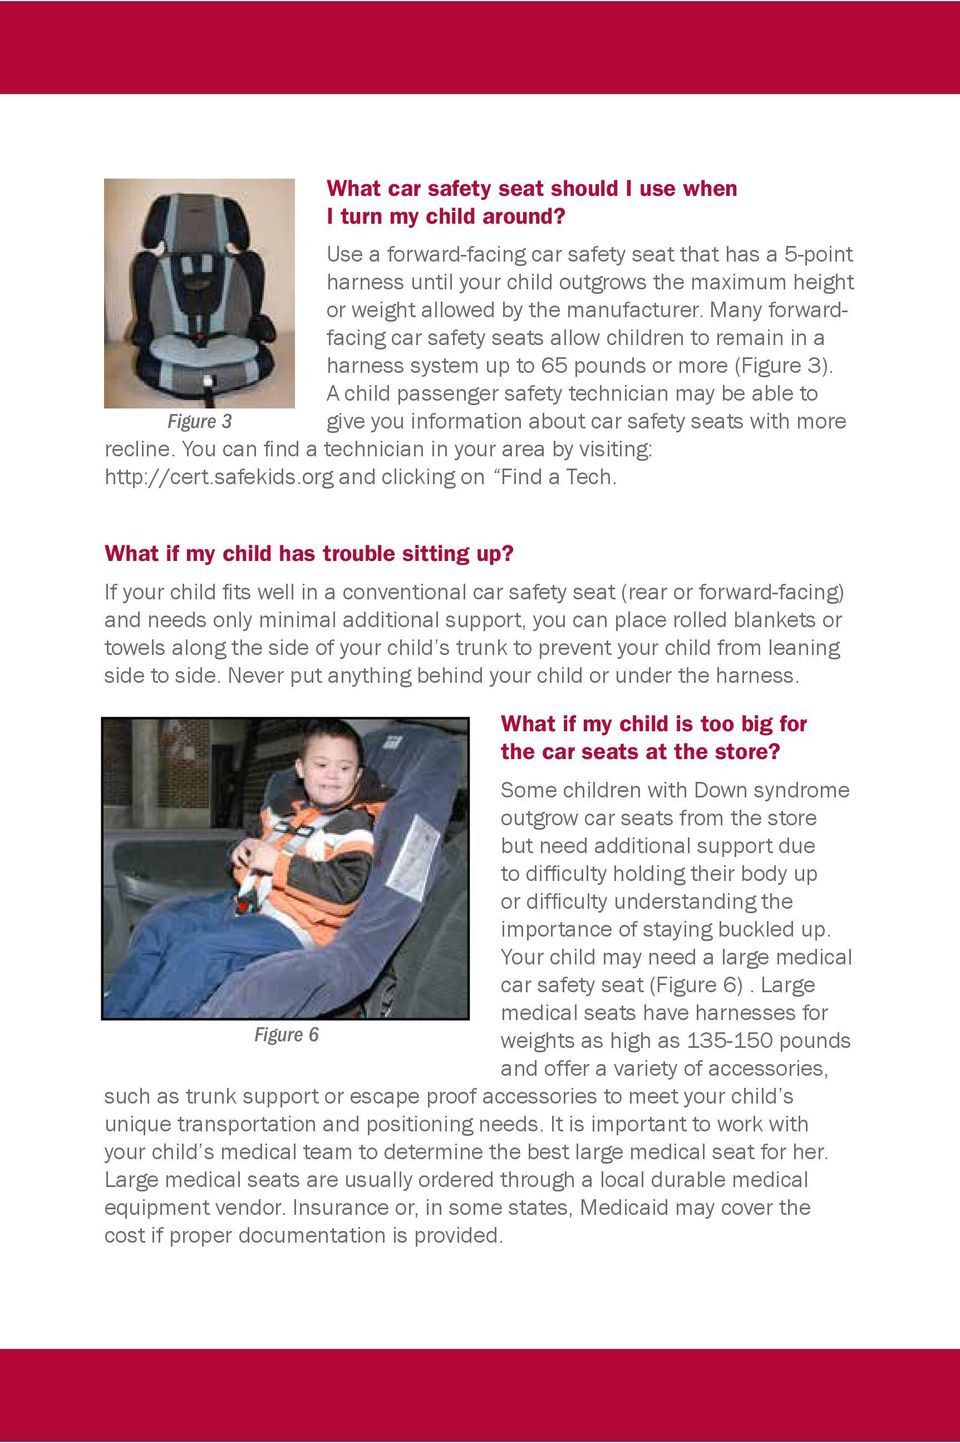 Many forwardfacing car safety seats allow children to remain in a harness system up to 65 pounds or more (Figure 3).